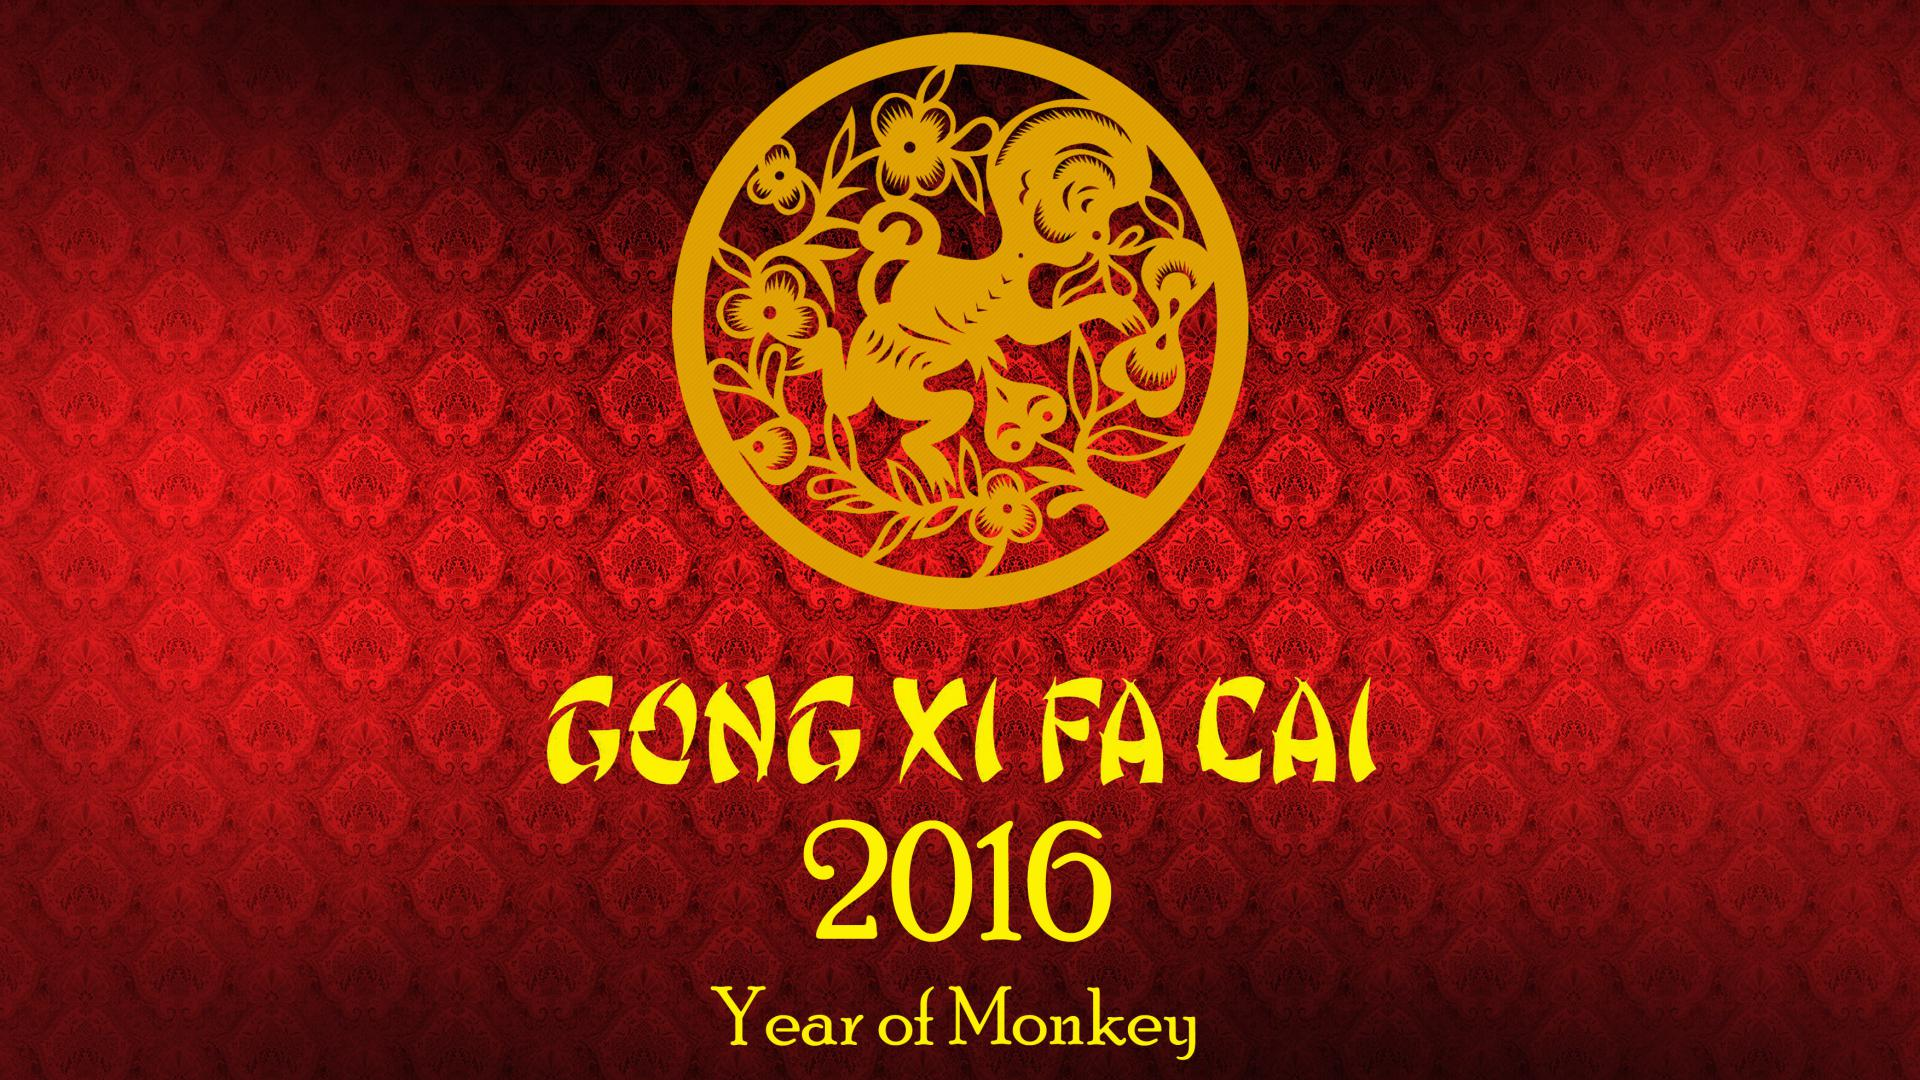 Chinese New Year 2016 Hd Wallpaper - Happy Chinese New Year 2017 Gong Xi Fa Cai , HD Wallpaper & Backgrounds